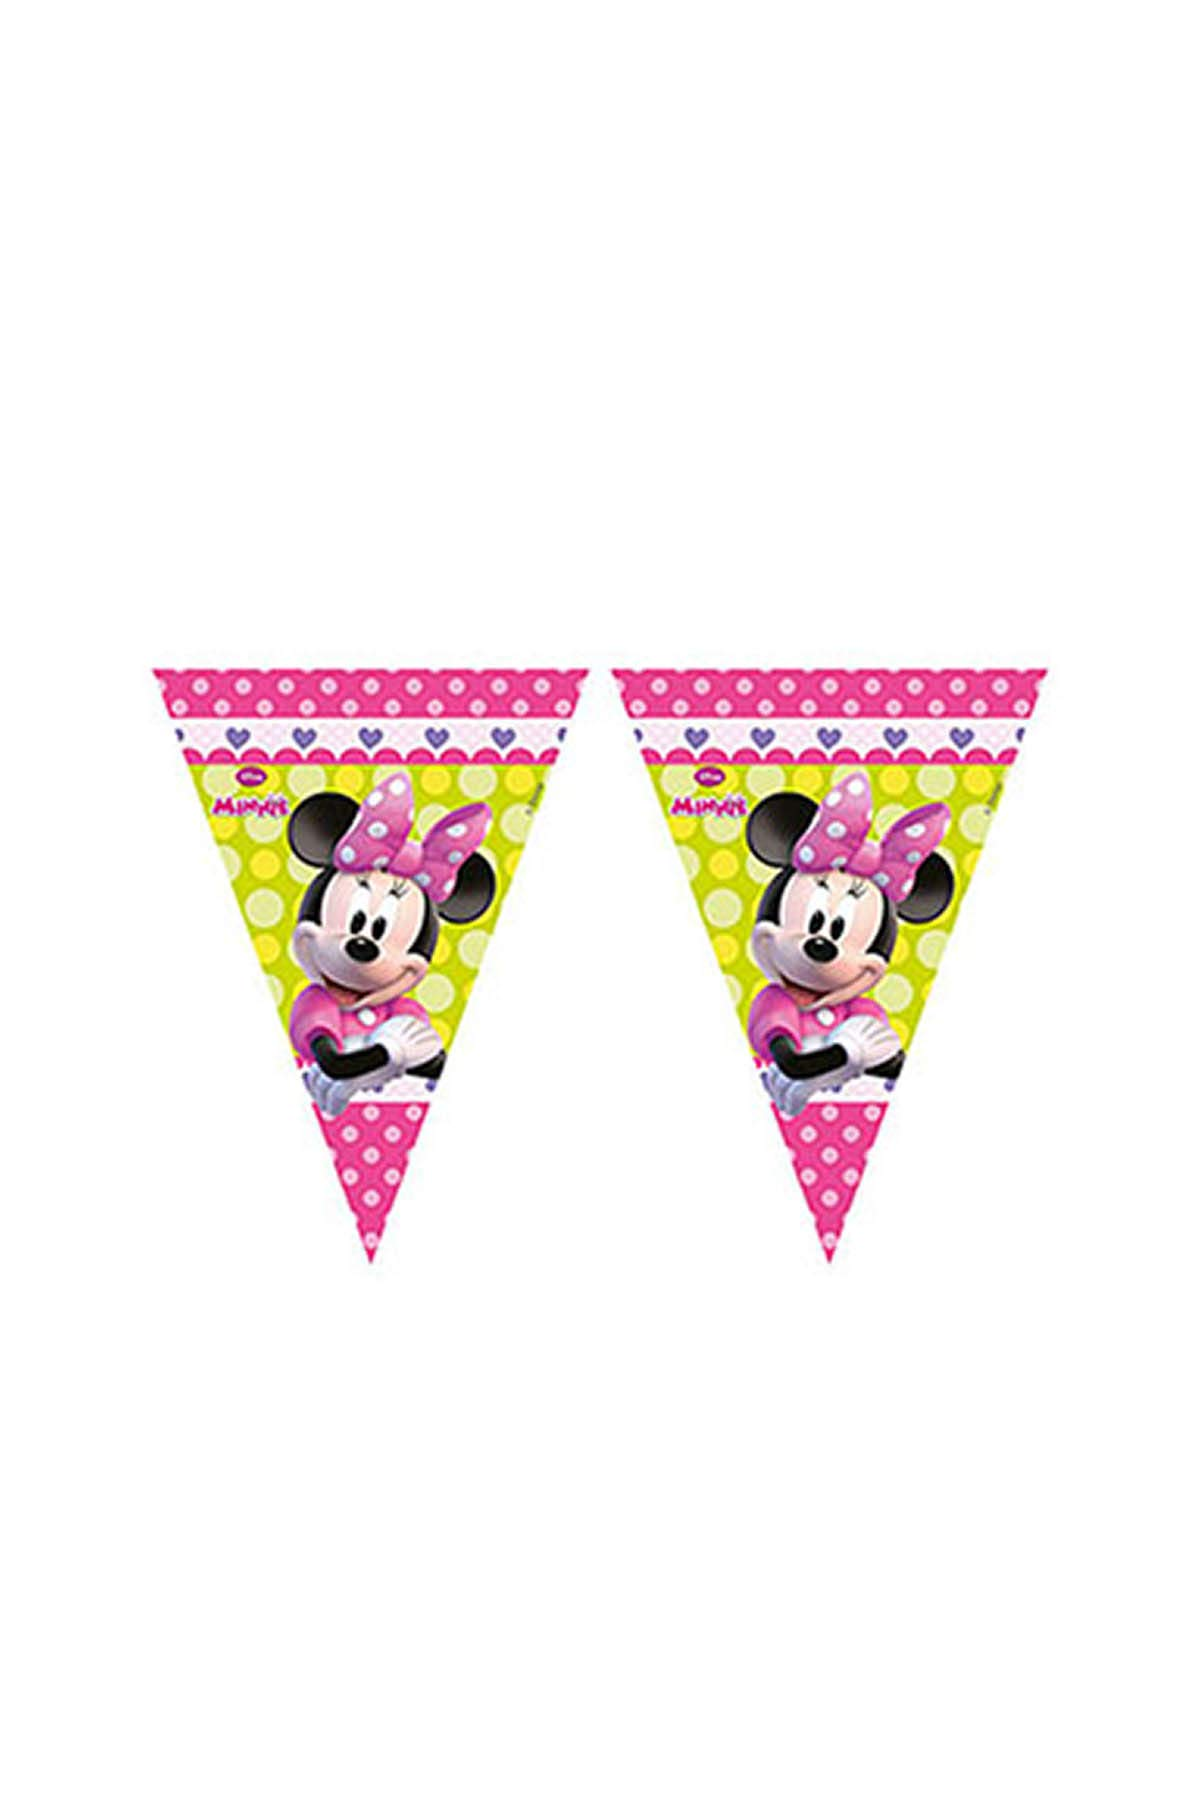 Disney Minnie Mouse Happy Birthday Party Themed Flag Bunting Banner 2.3m Long